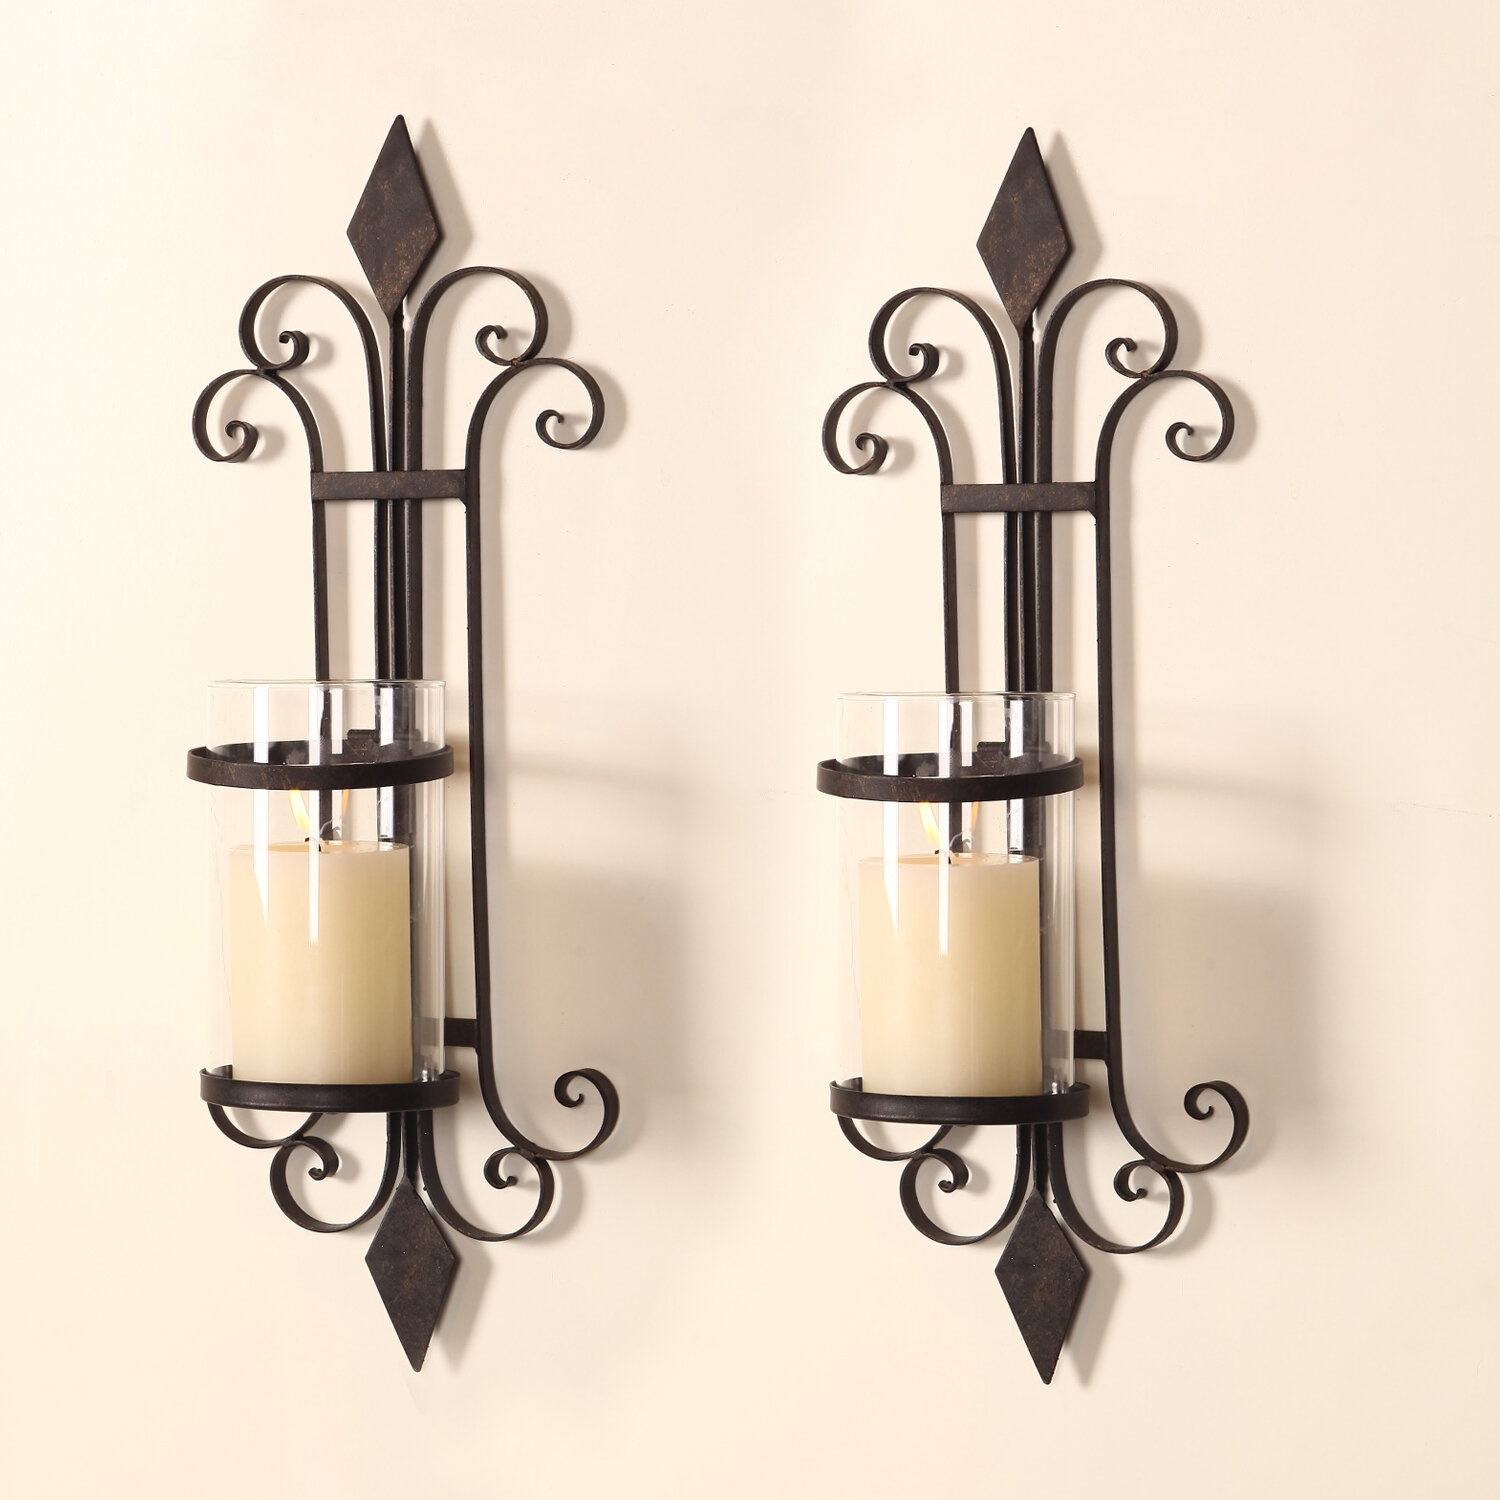 for modern danish candle candlestick crate and barrel of full mounted barn sconces iron sconce candles holders black kirklands wrought wall discontinued pottery size